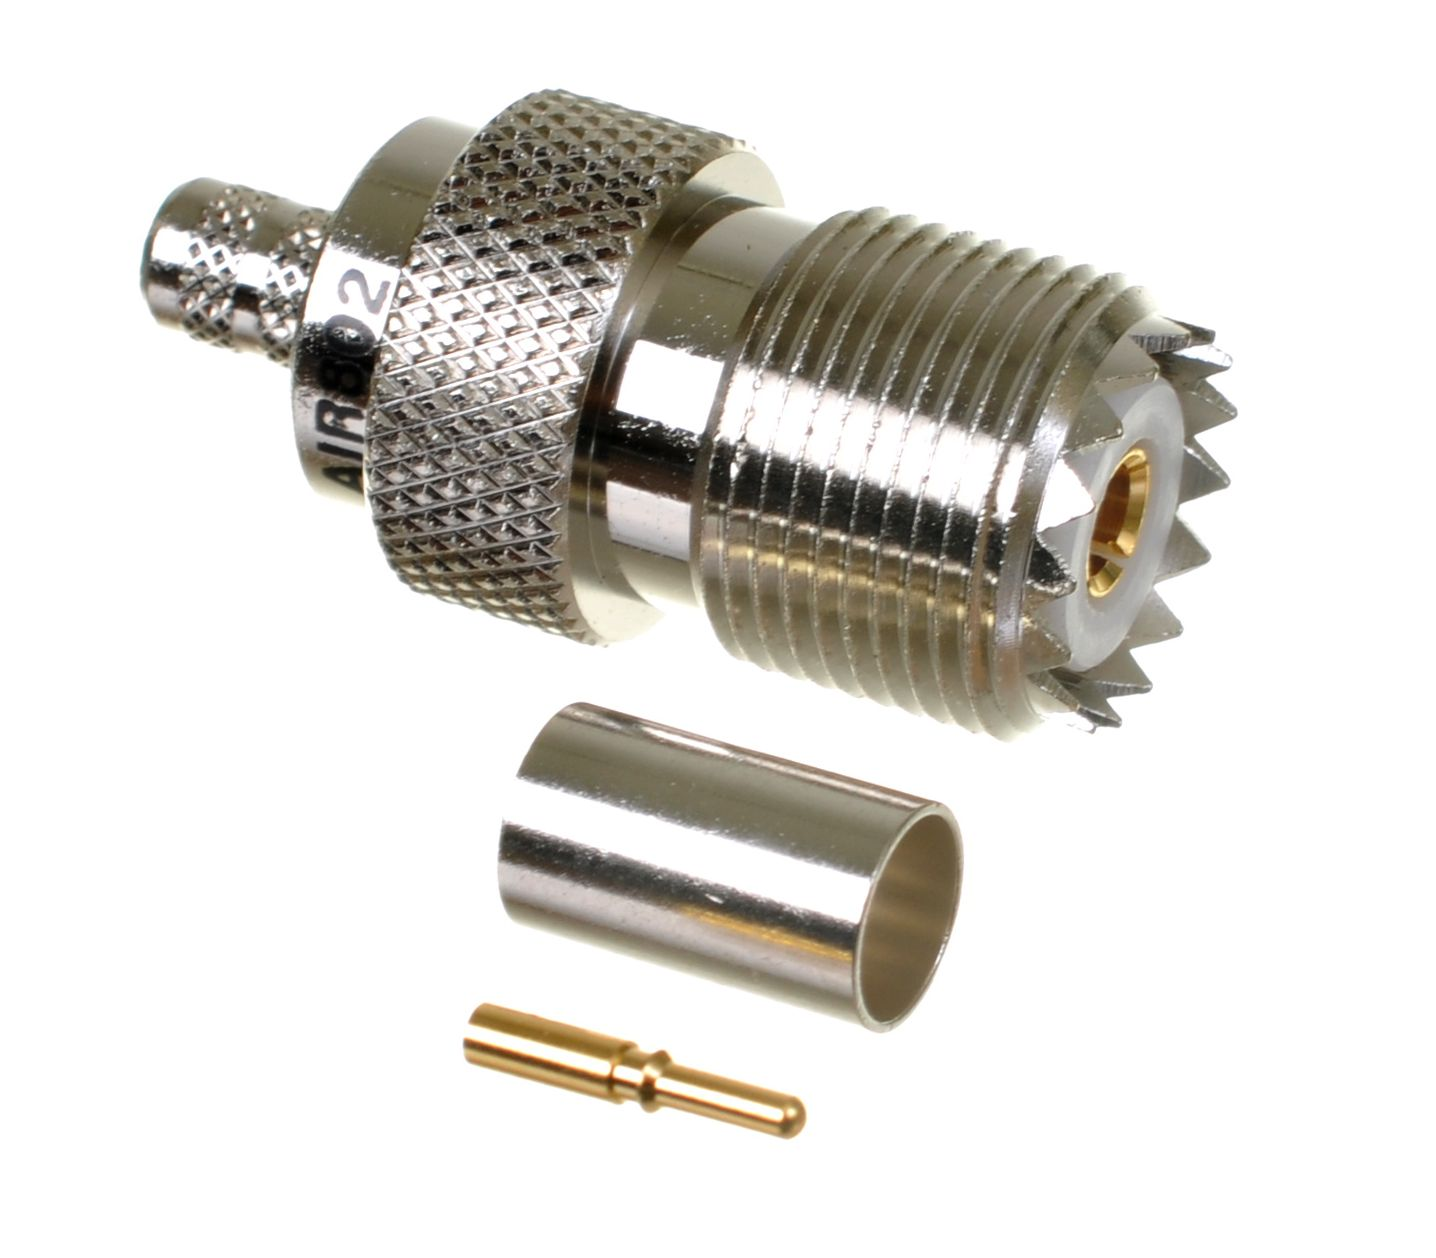 UHF jack-female or SO-239 connector for AIR802 CA240, Times Microwave LMR240